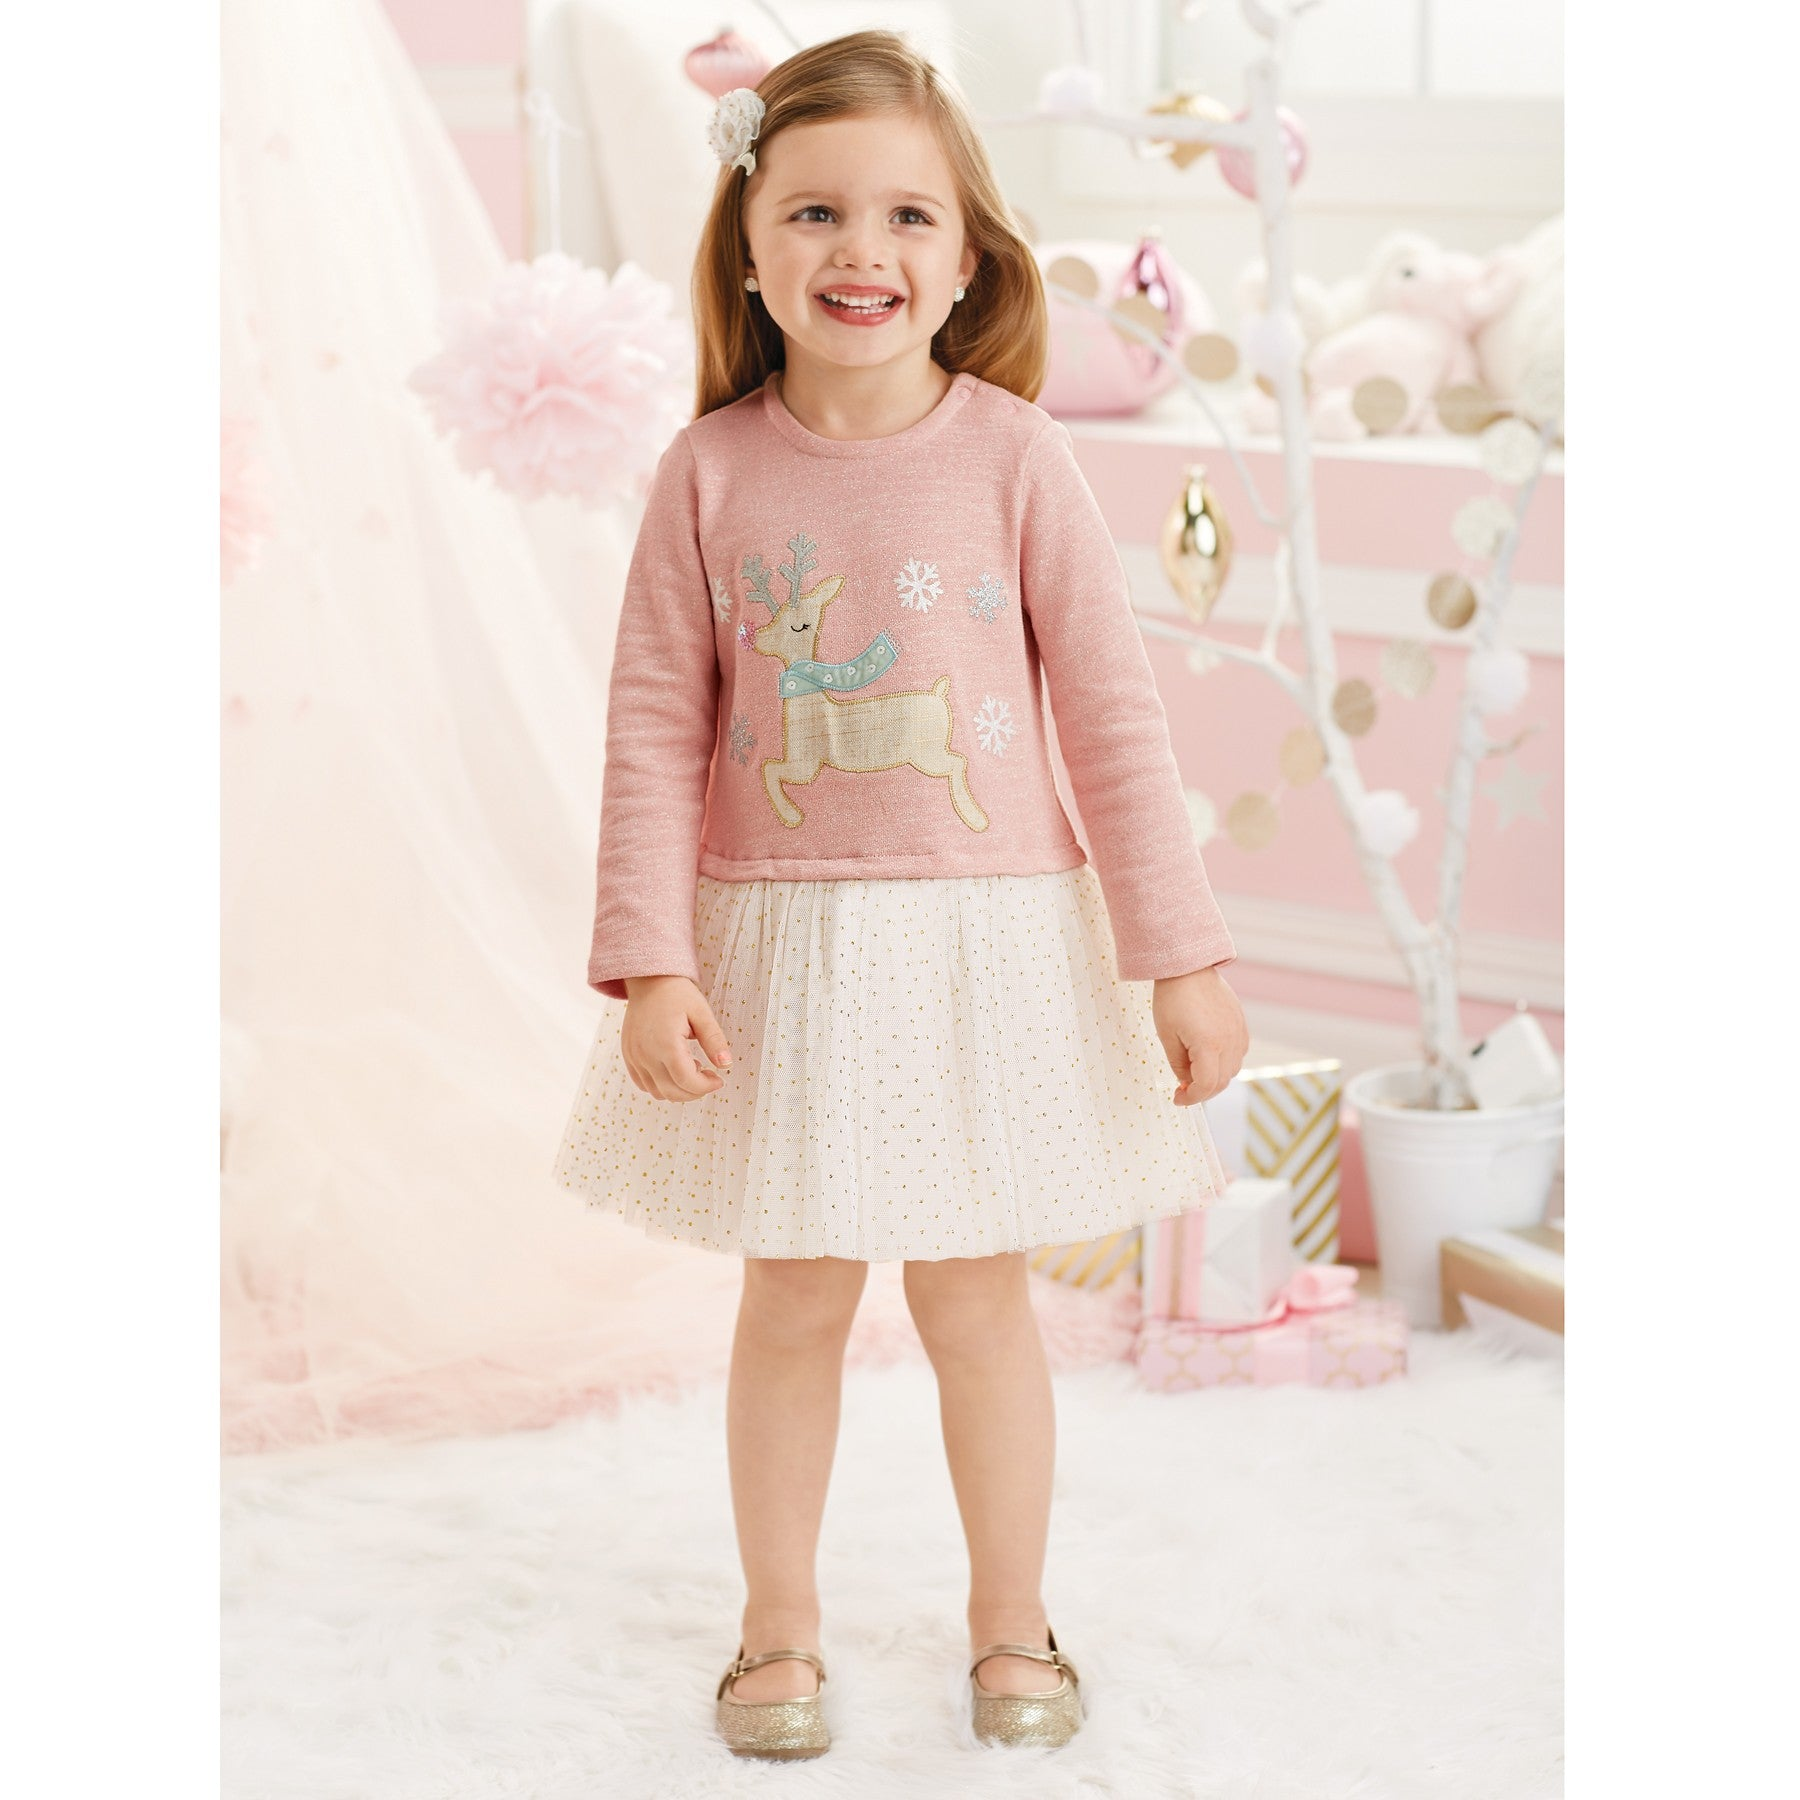 Reindeer Sparkle Tutu Dress by Mud Pie